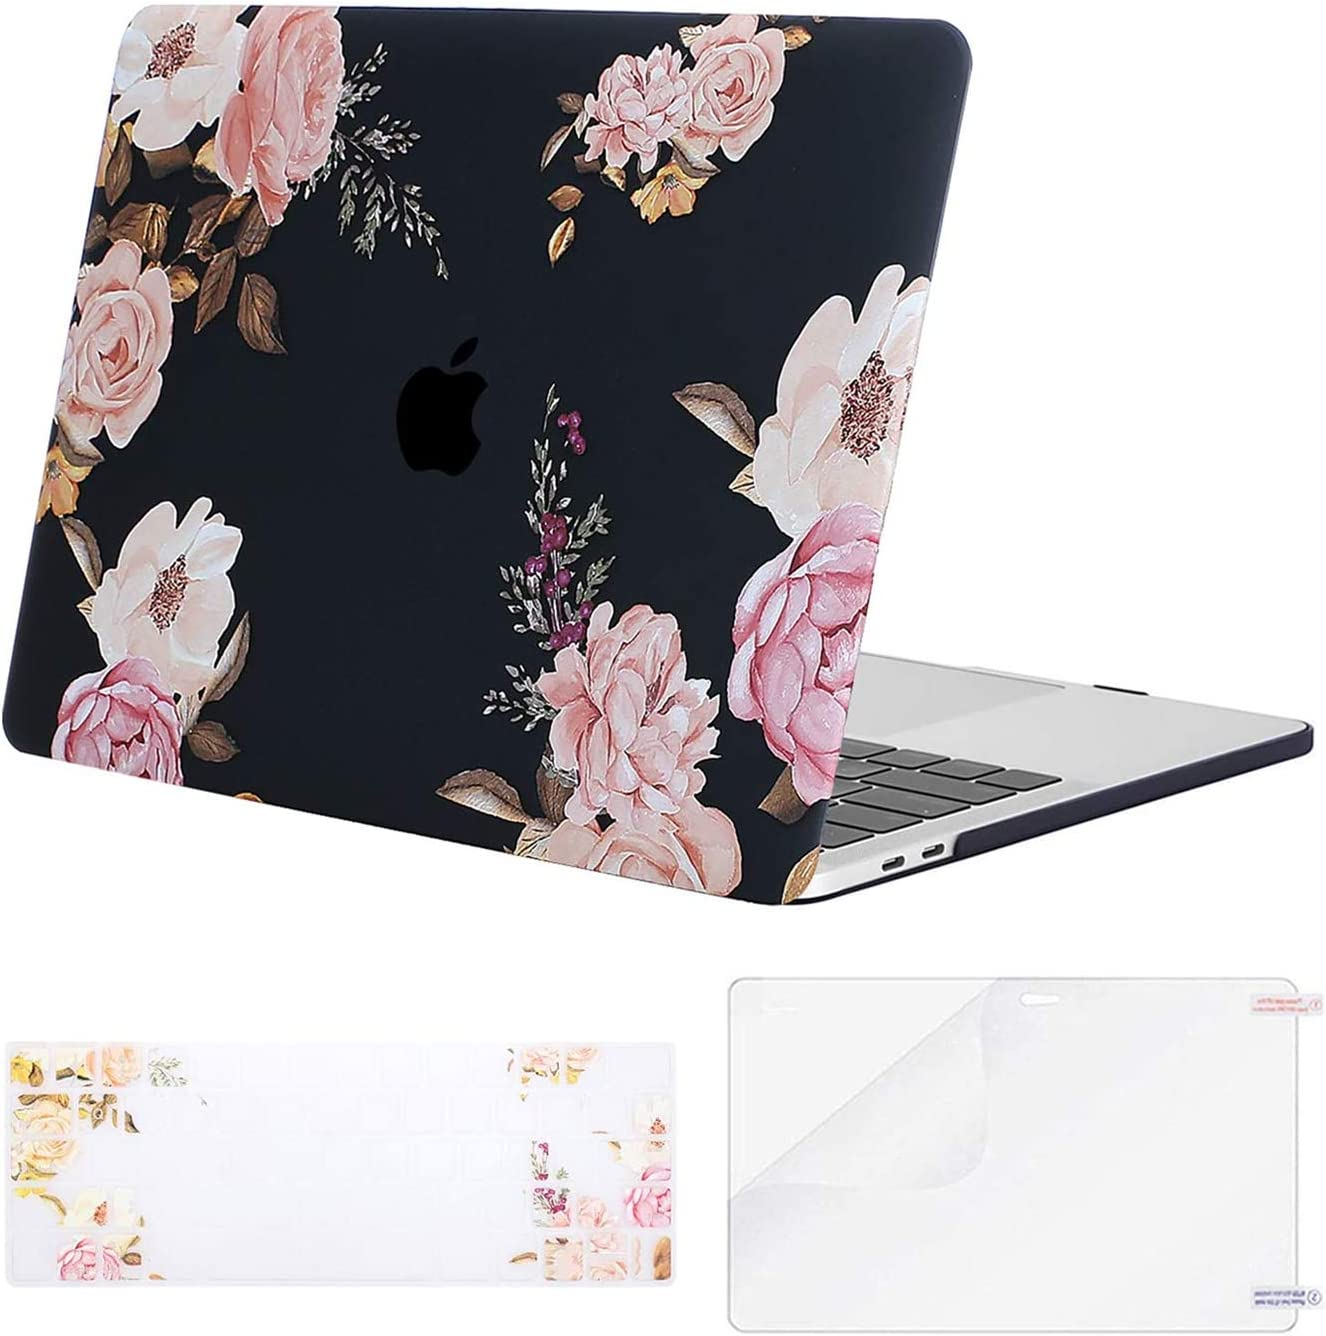 Pink Marble MOSISO MacBook Pro 13 Case 2018 2017 2016 Release A1989 A1706 A1708 w// /& w//o Touch Bar,Plastic Pattern Hard Case /& Keyboard Cover /& Screen Protector Compatible Newest Mac Pro 13 in